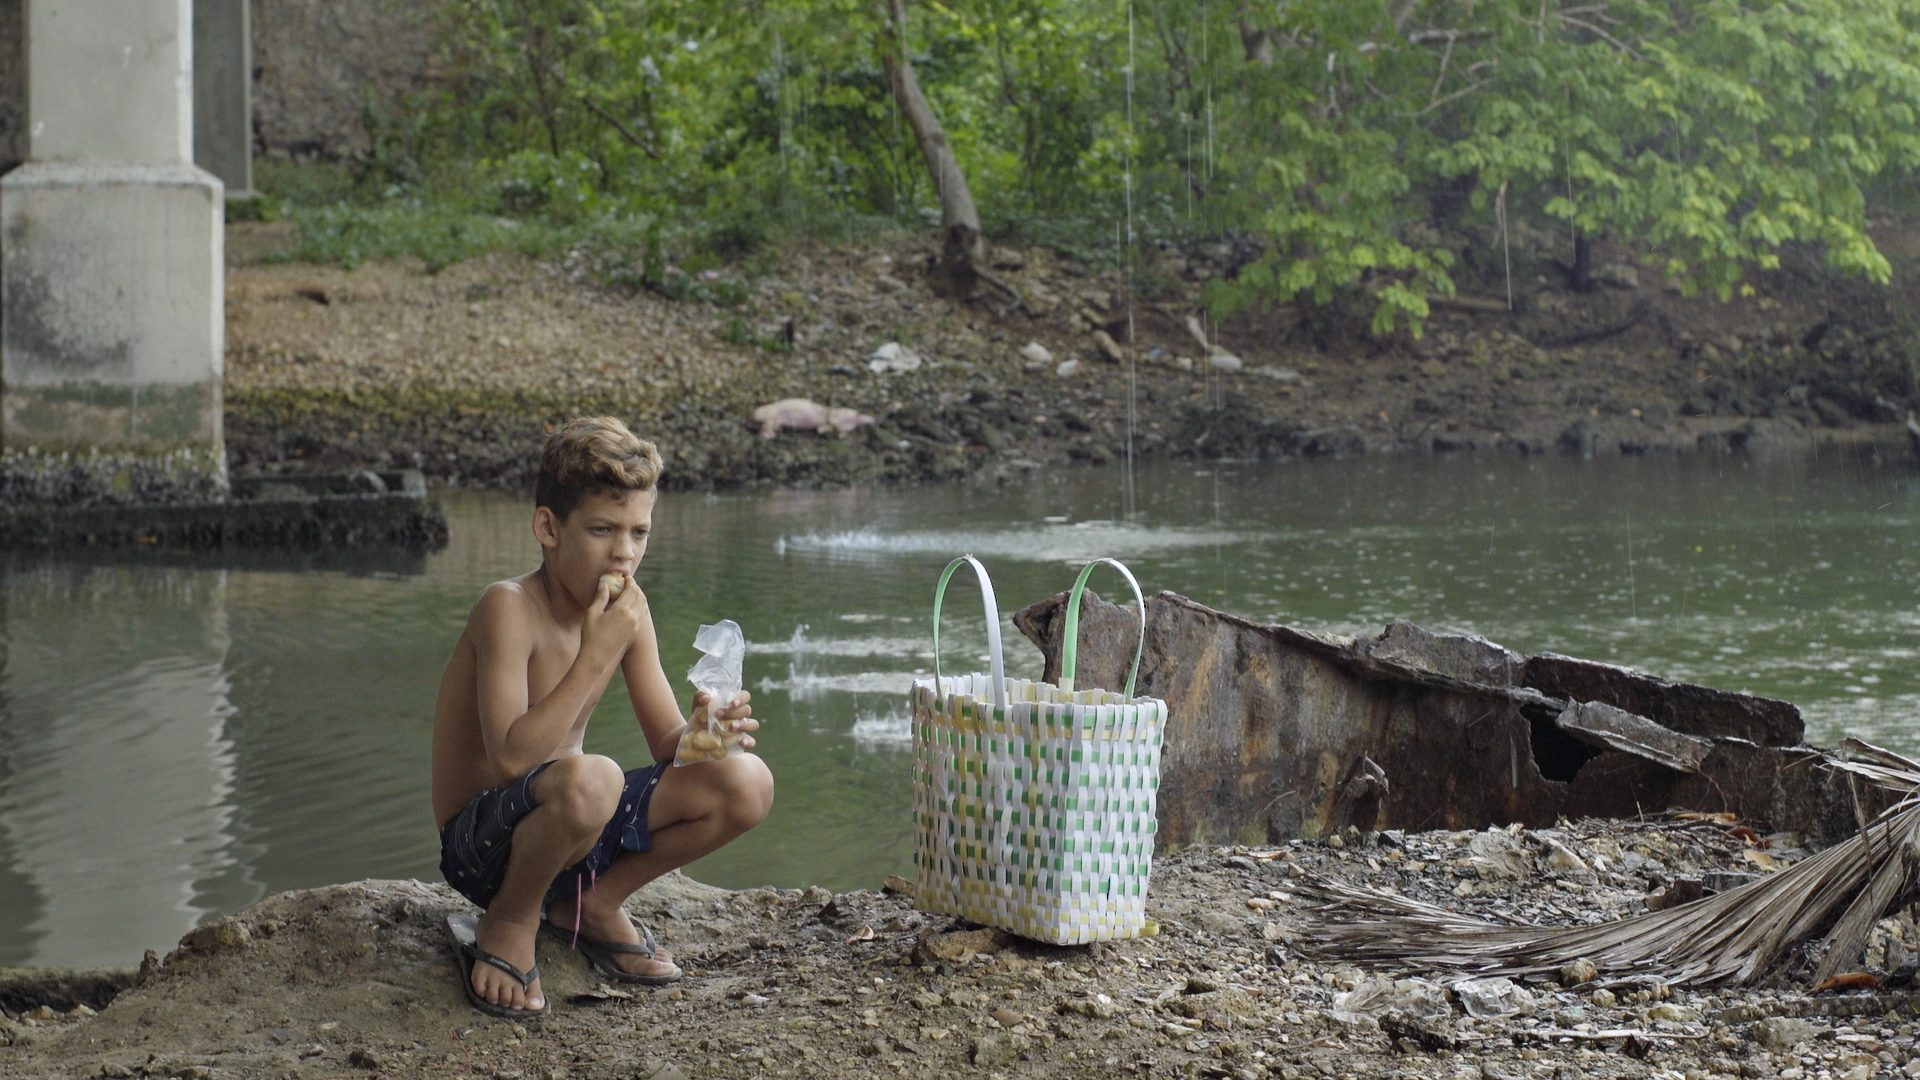 12 Short Films From Cuba's EICTV Celebrate the Best in Documentary Student Filmmaking